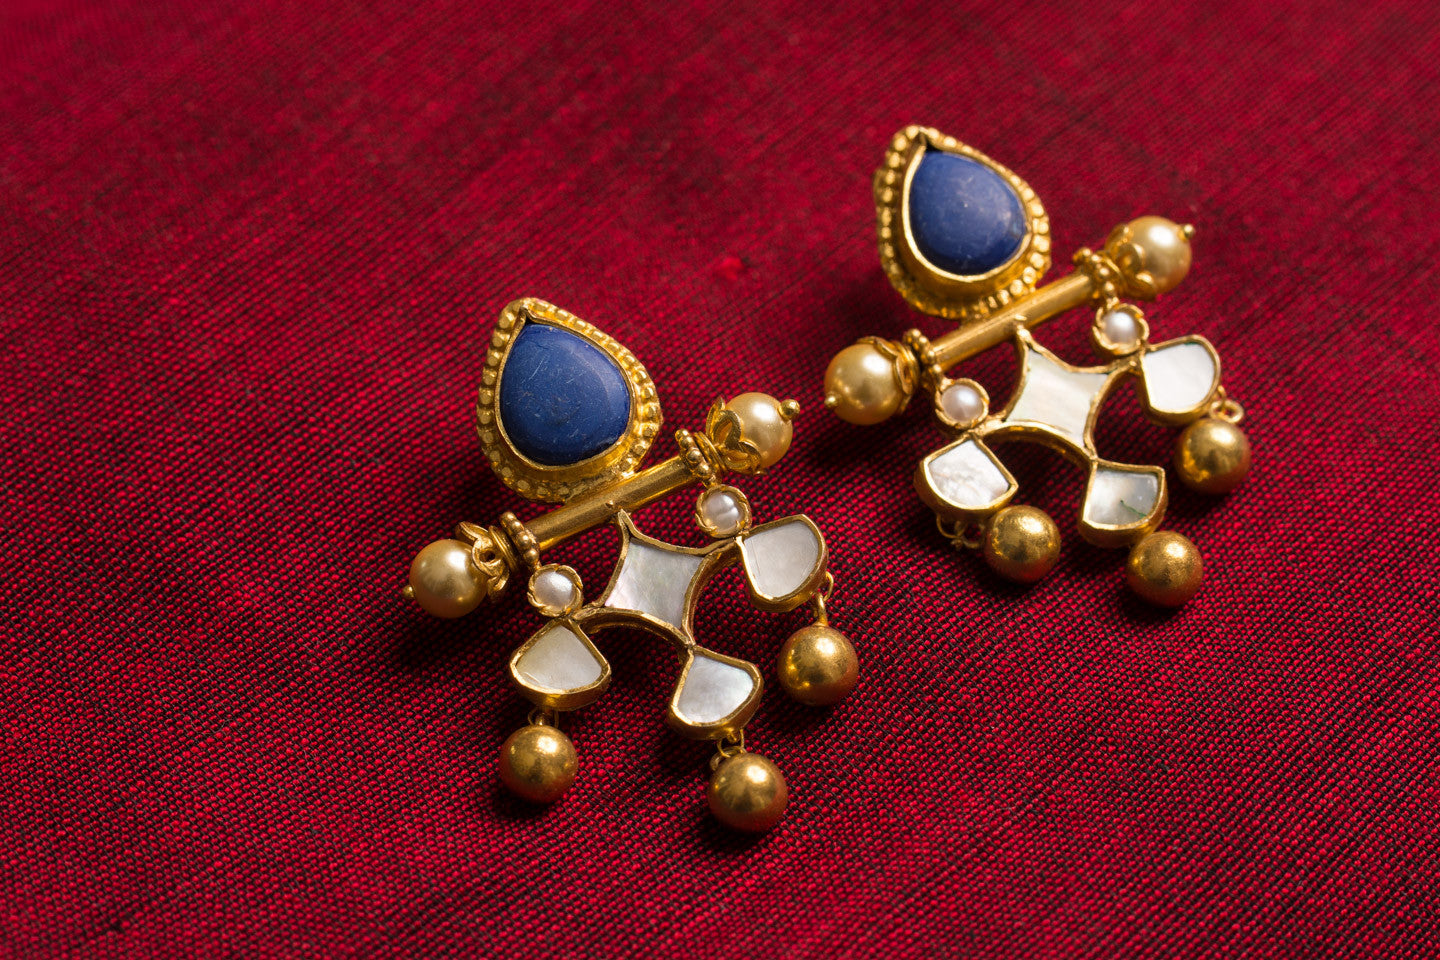 20a465-silver-gold-plated-amrapali-earrings-blue-stone-pearl-glass